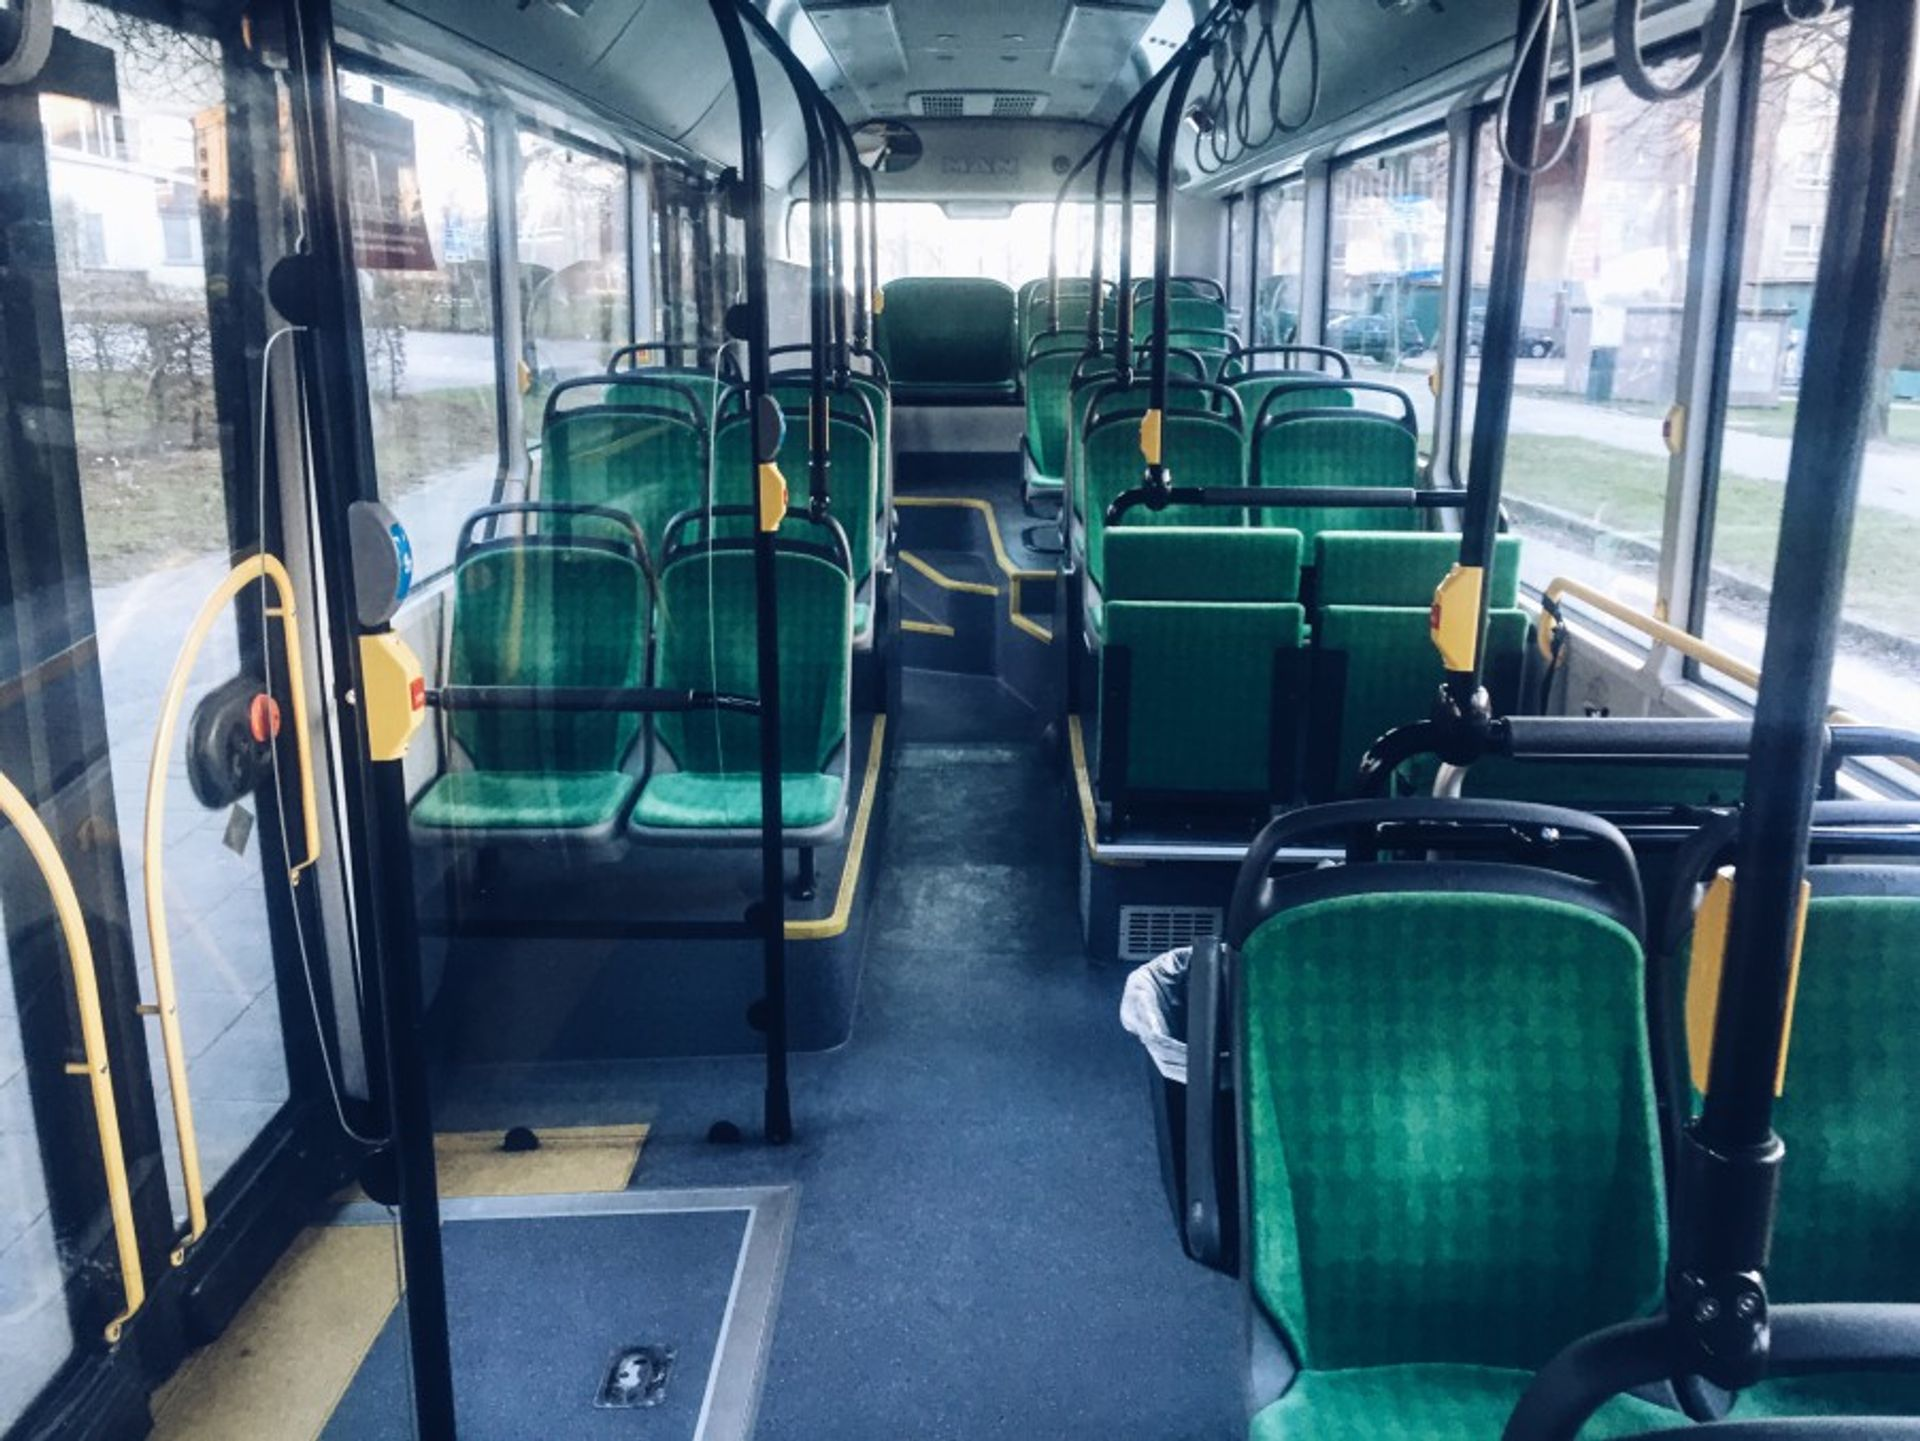 Empty seats on a bus.